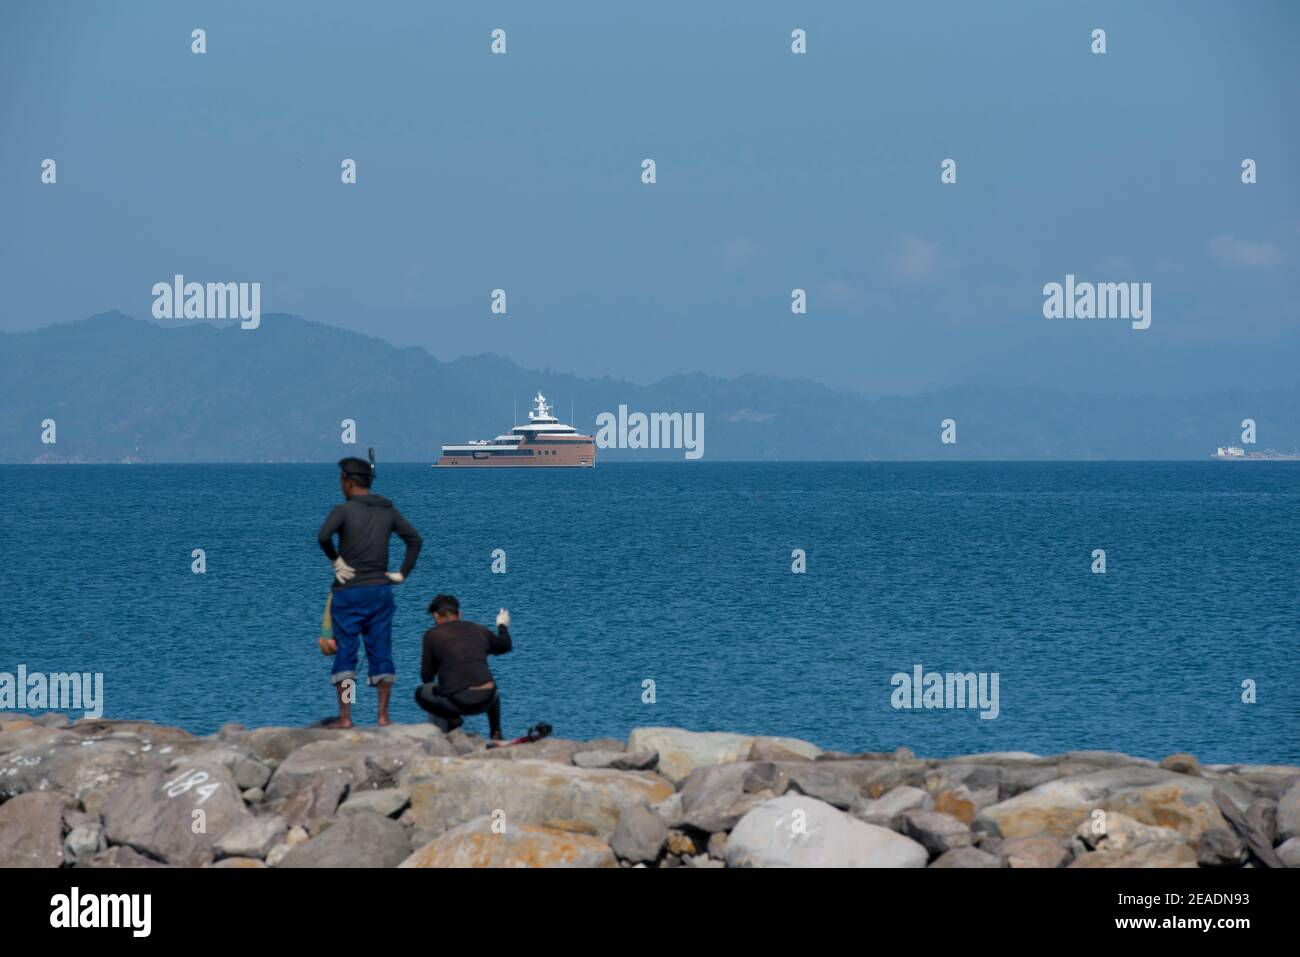 The illegal Russian super cruise ship 'La Datcha George Town' off the coast of Aceh province, in Banda Aceh, Indonesia on February 9, 2021. Stock Photo